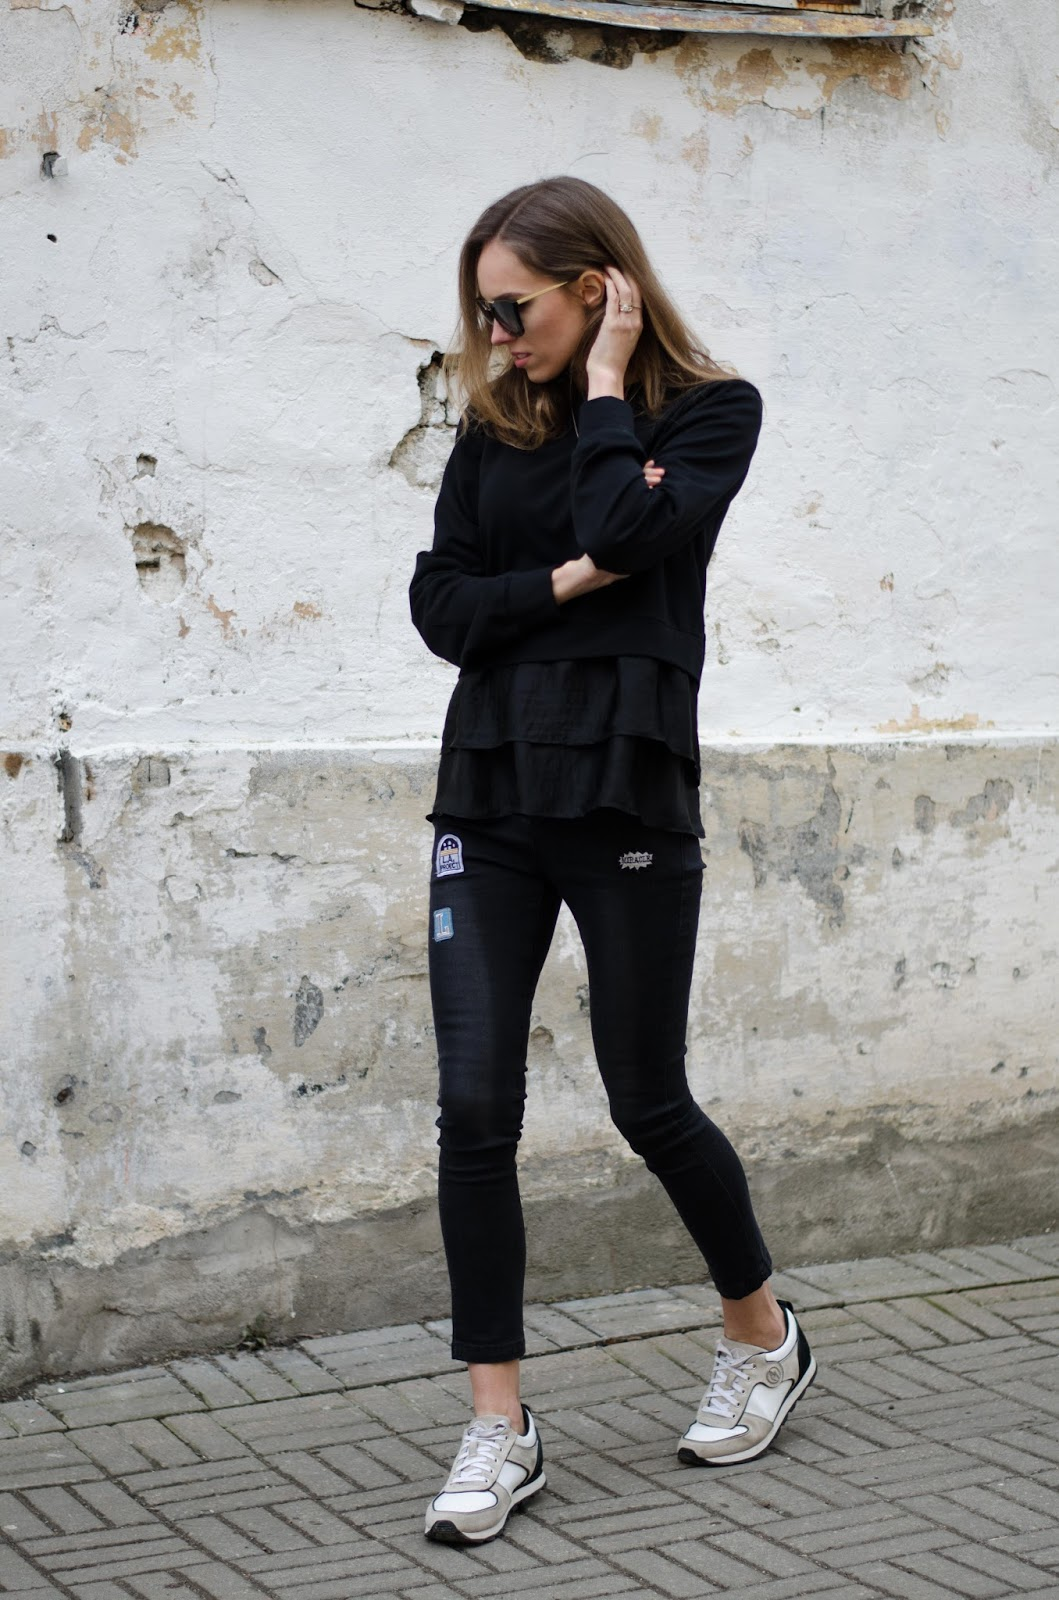 kristjaana mere all black casual spring outfit